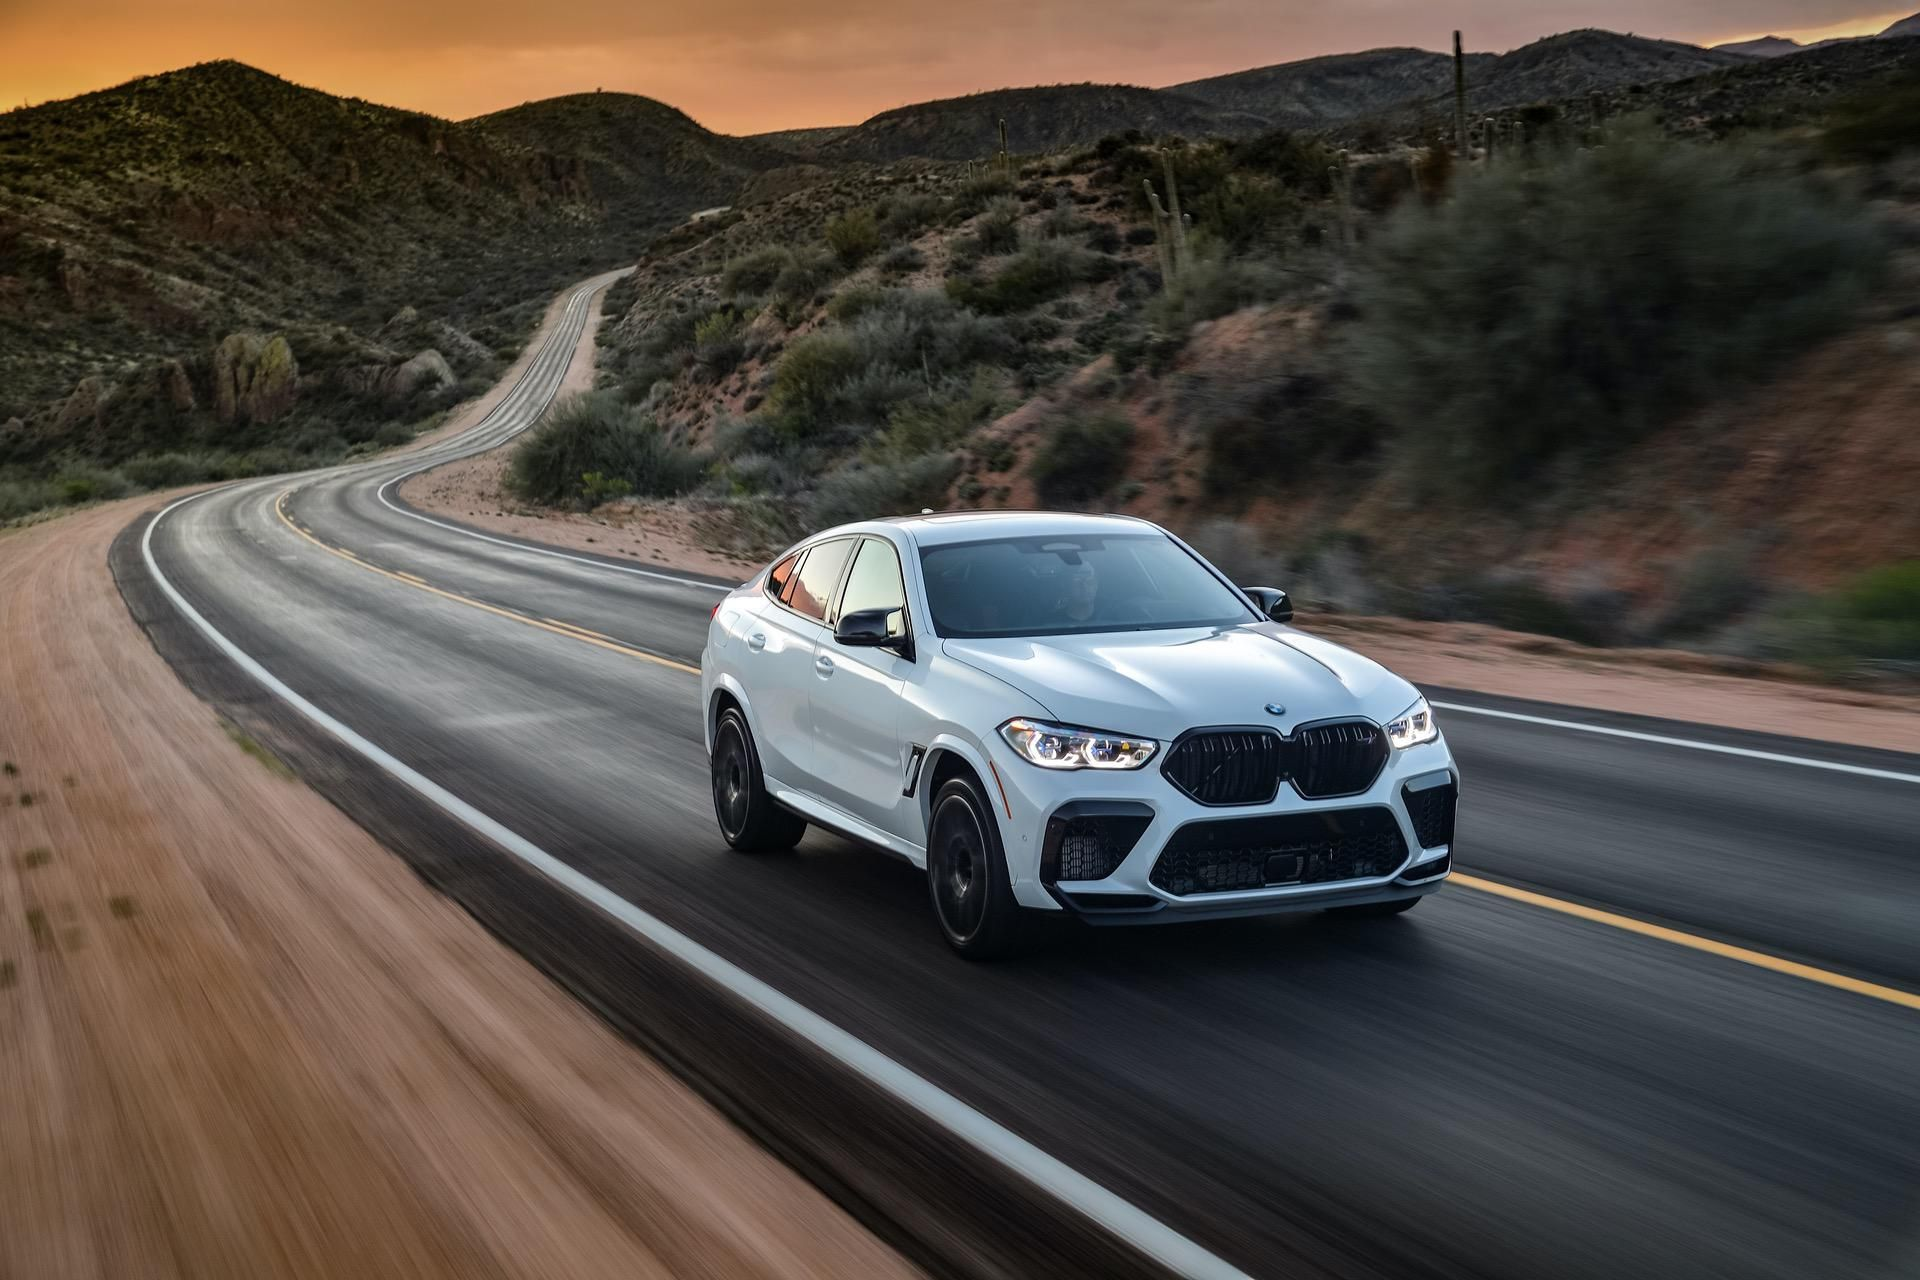 Stunning Images 2020 Bmw X6 M Competition In Mineral White In 2020 Bmw X6 Bmw Bmw White